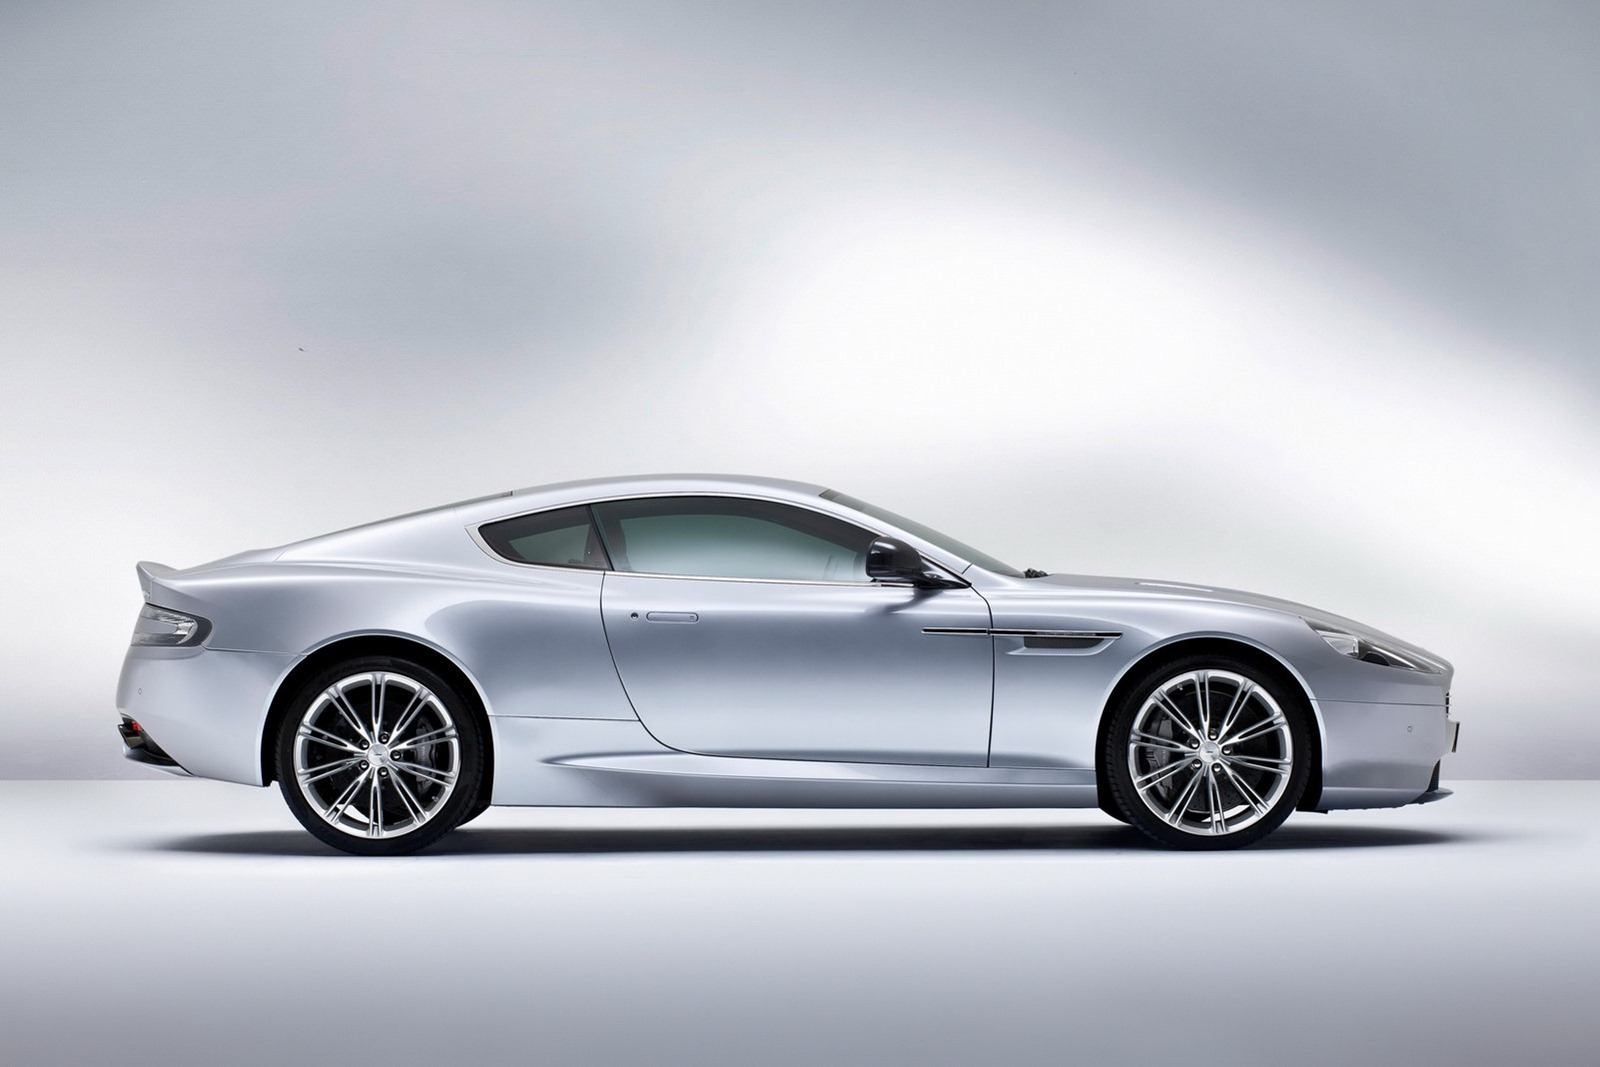 Aston_Martin_DB9_2013_Side